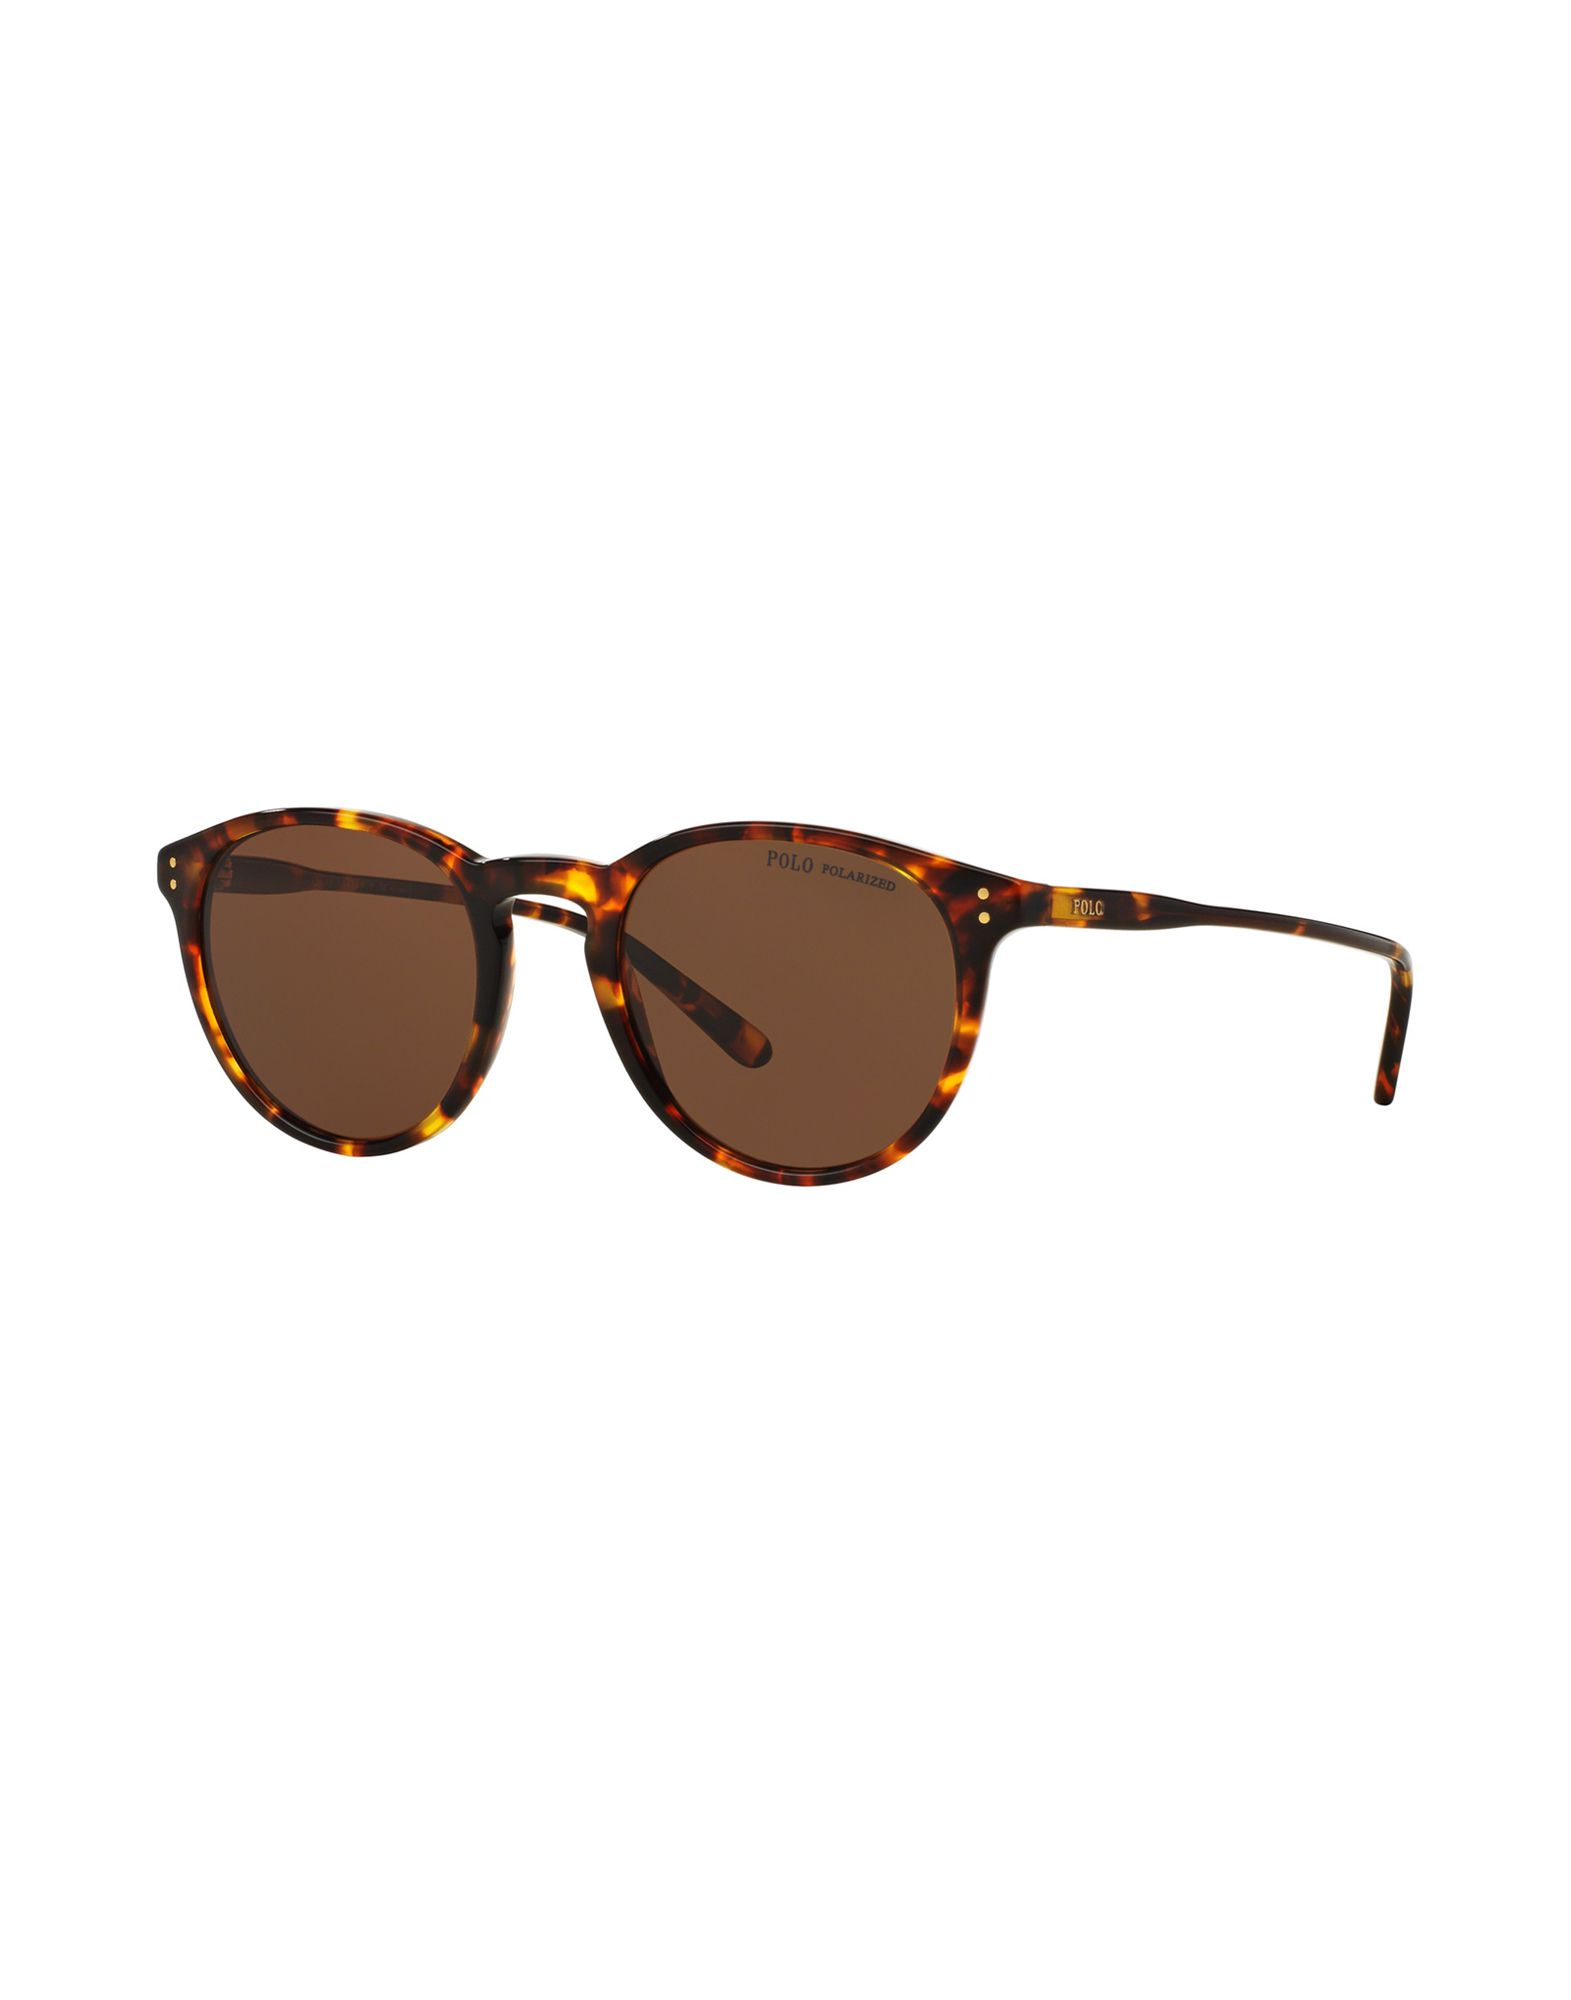 Polo Ralph Lauren Sunglasses In Dark Brown